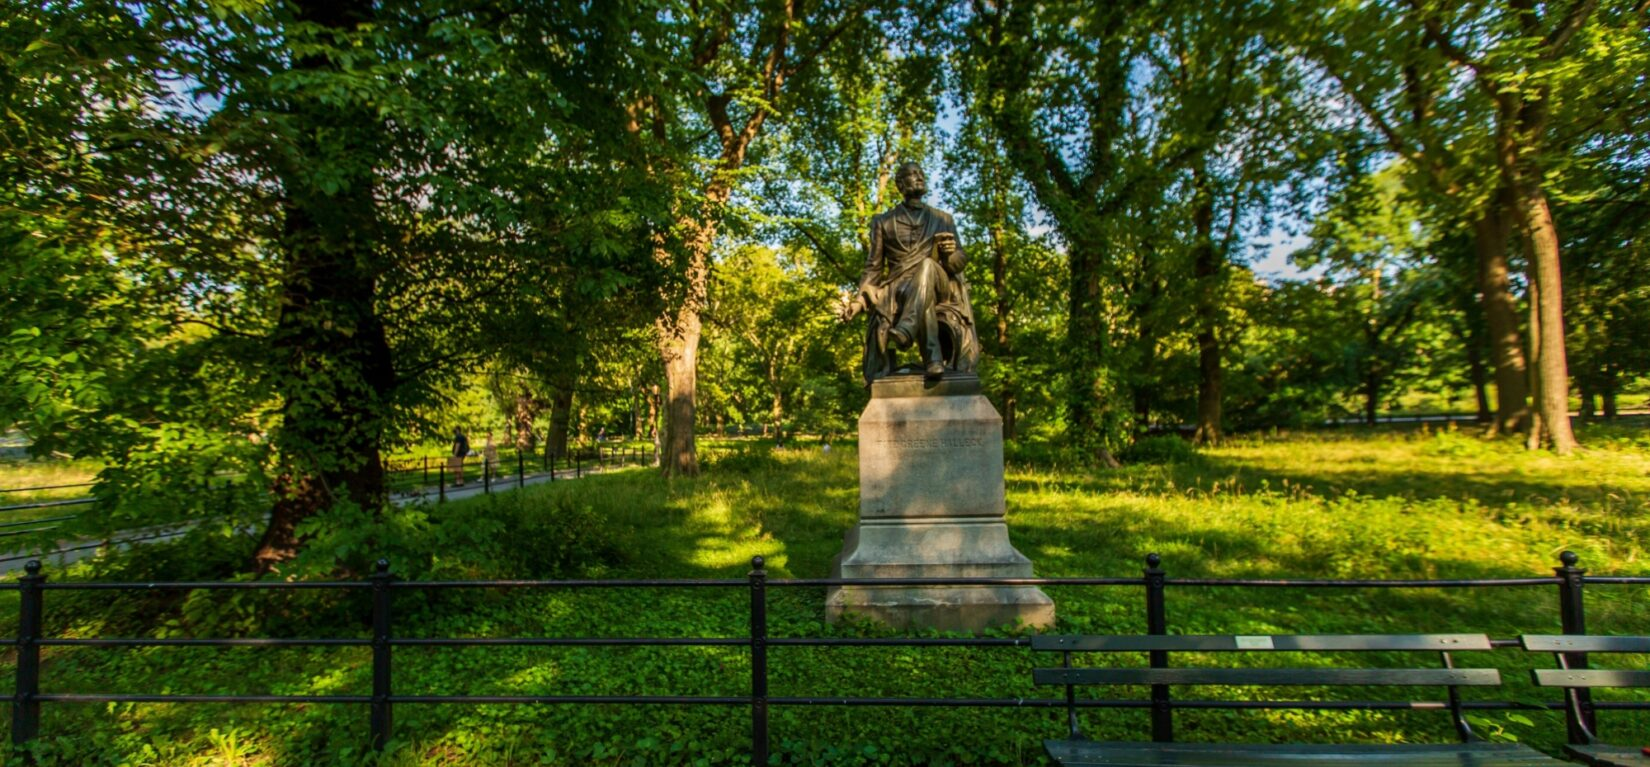 The statue of Halleck sitting under leafy trees